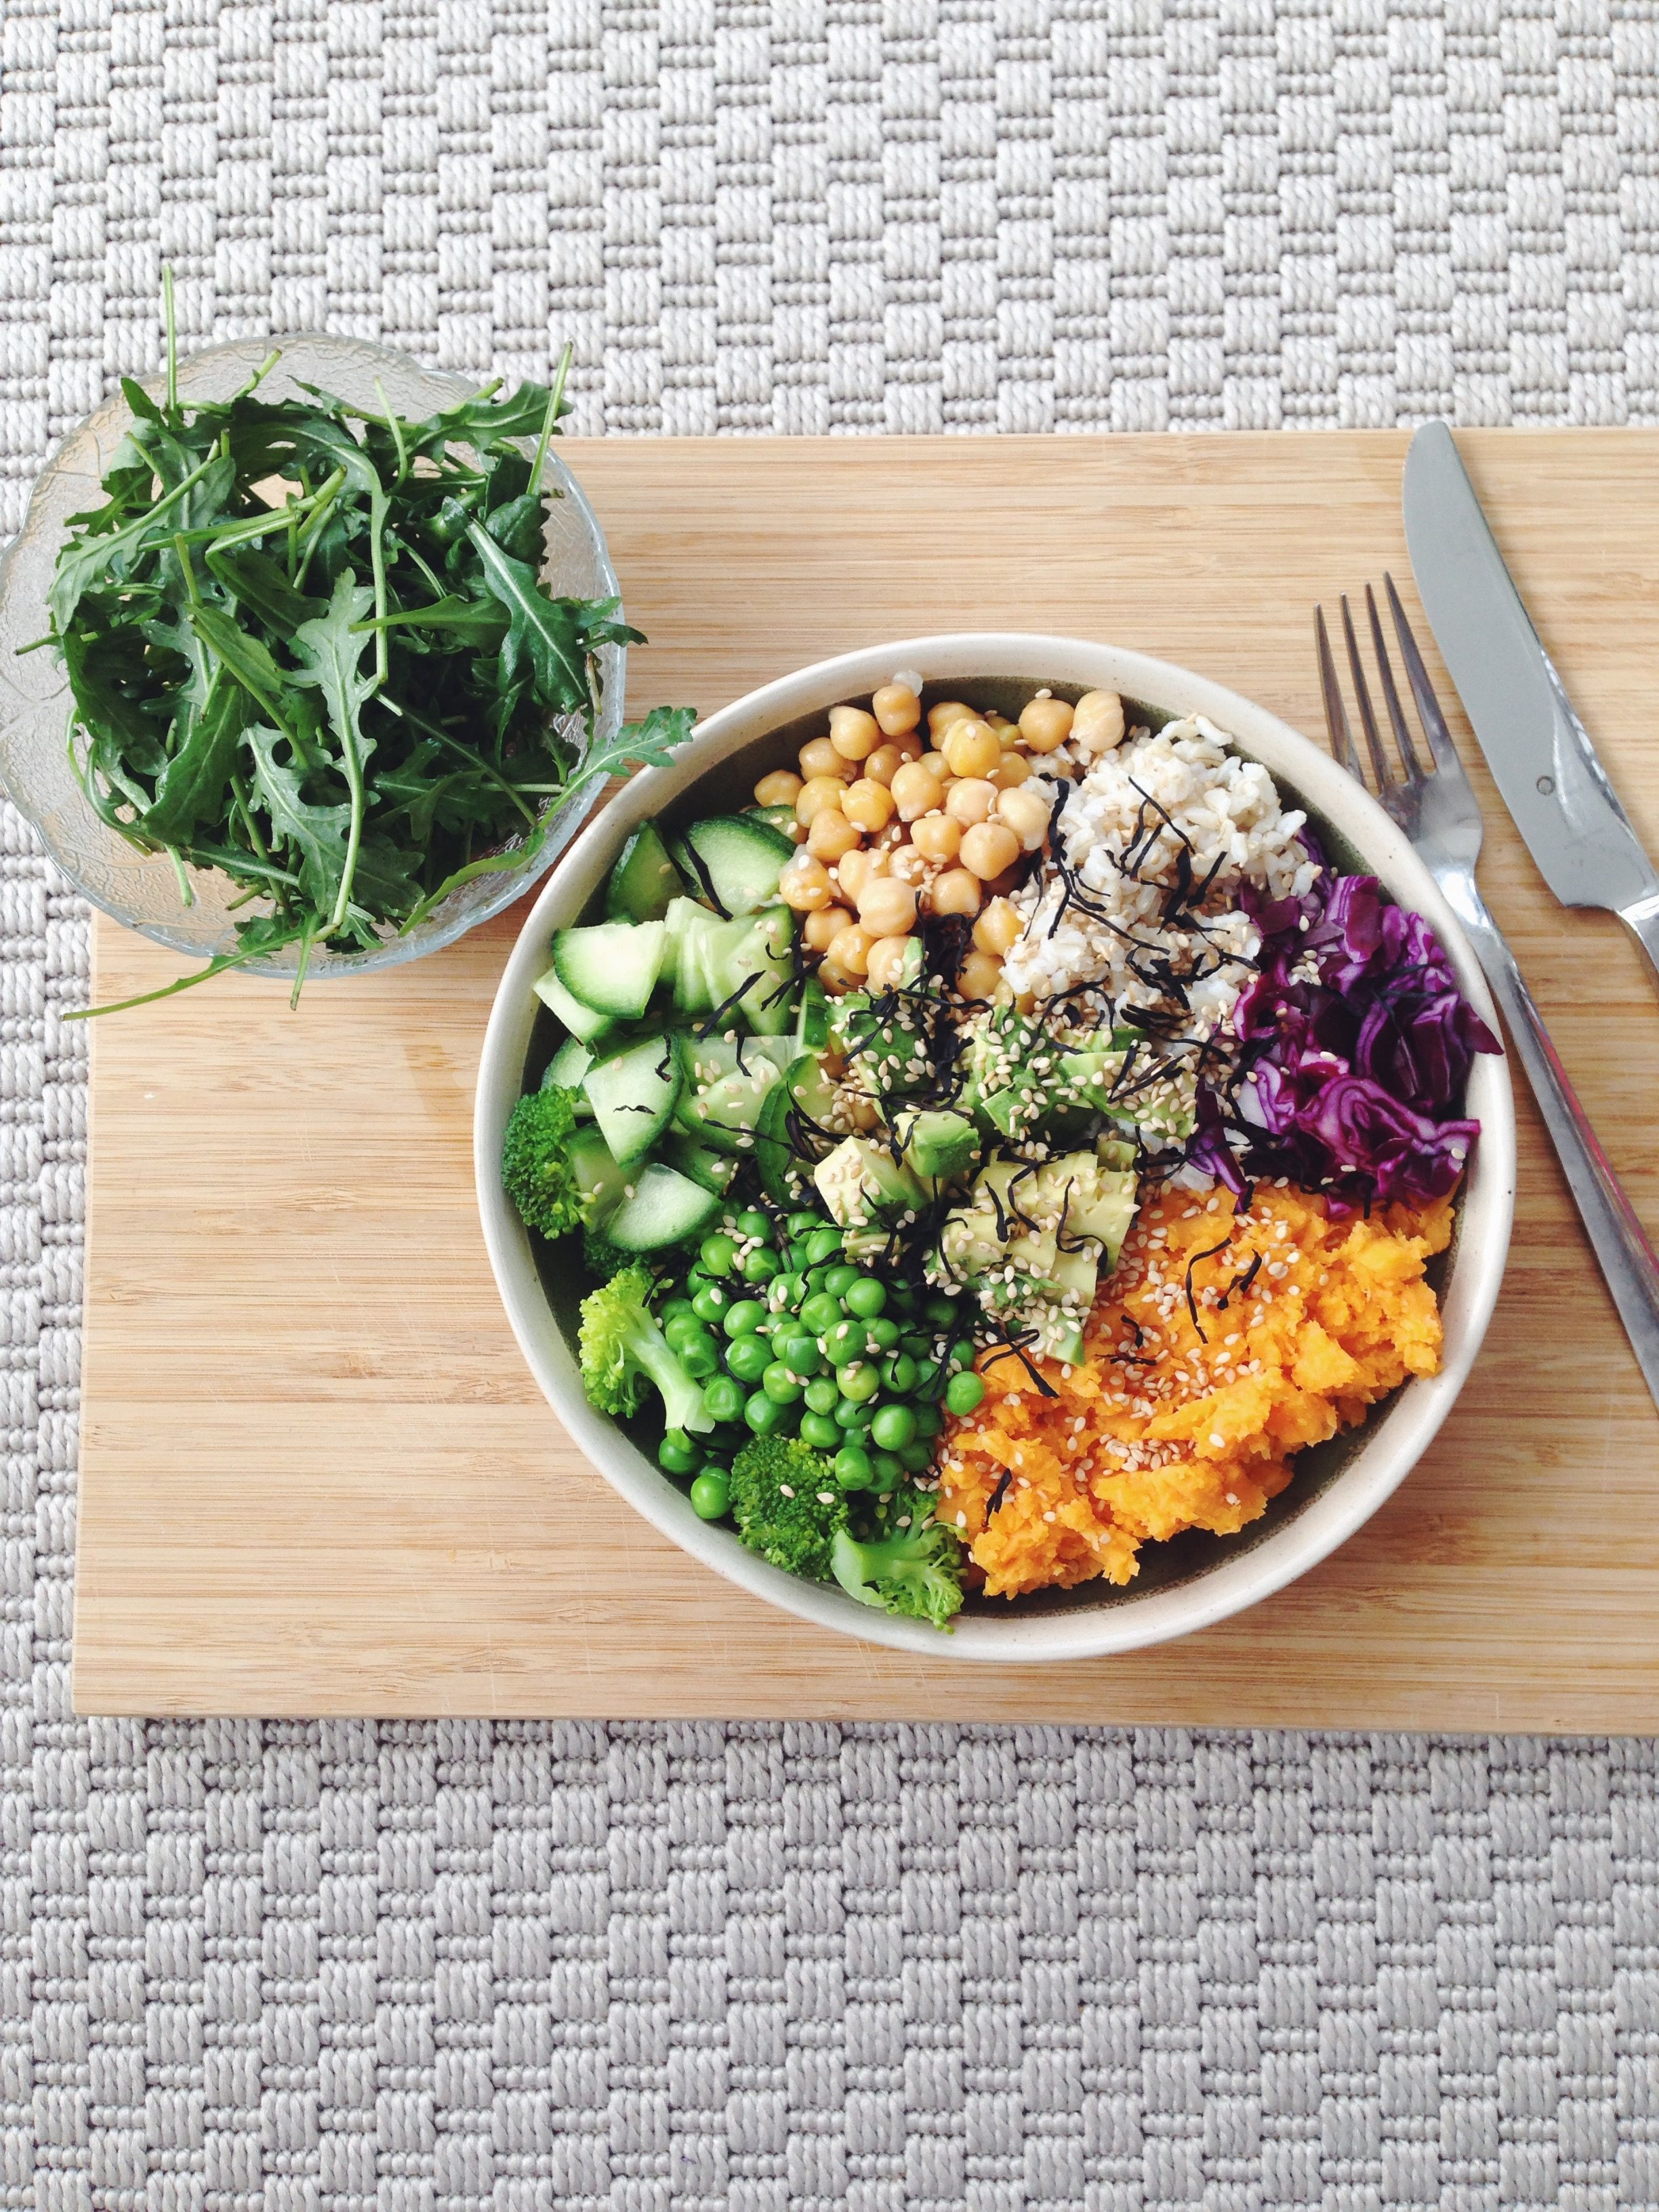 Fad Diets From the 1970s to Today - Biggest Diet Trend the Year You